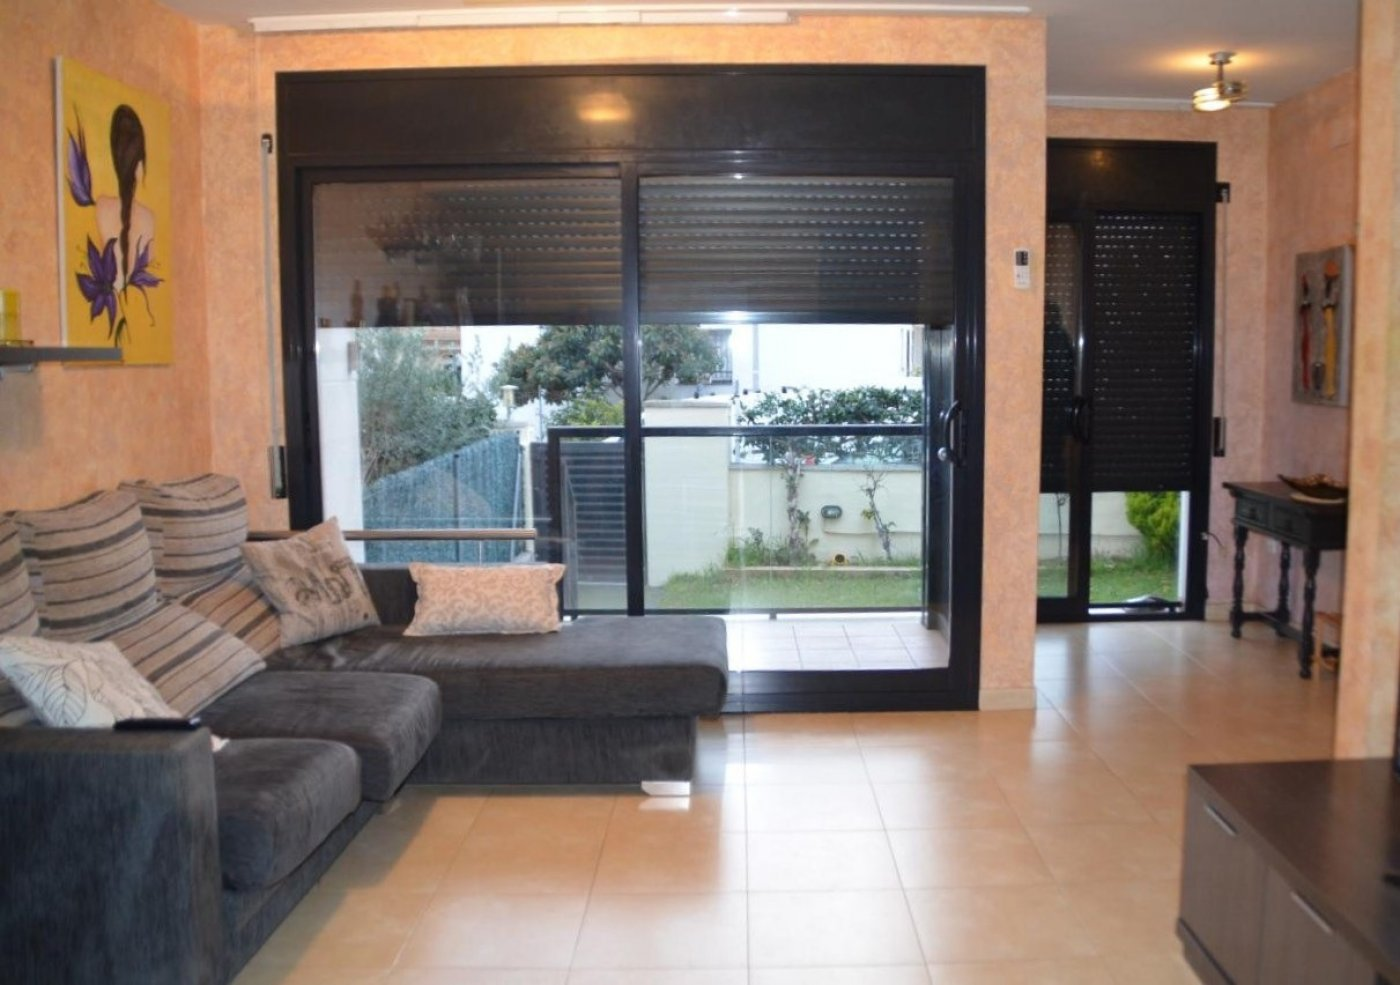 Townhouse for sale in Cal cego, Cunit